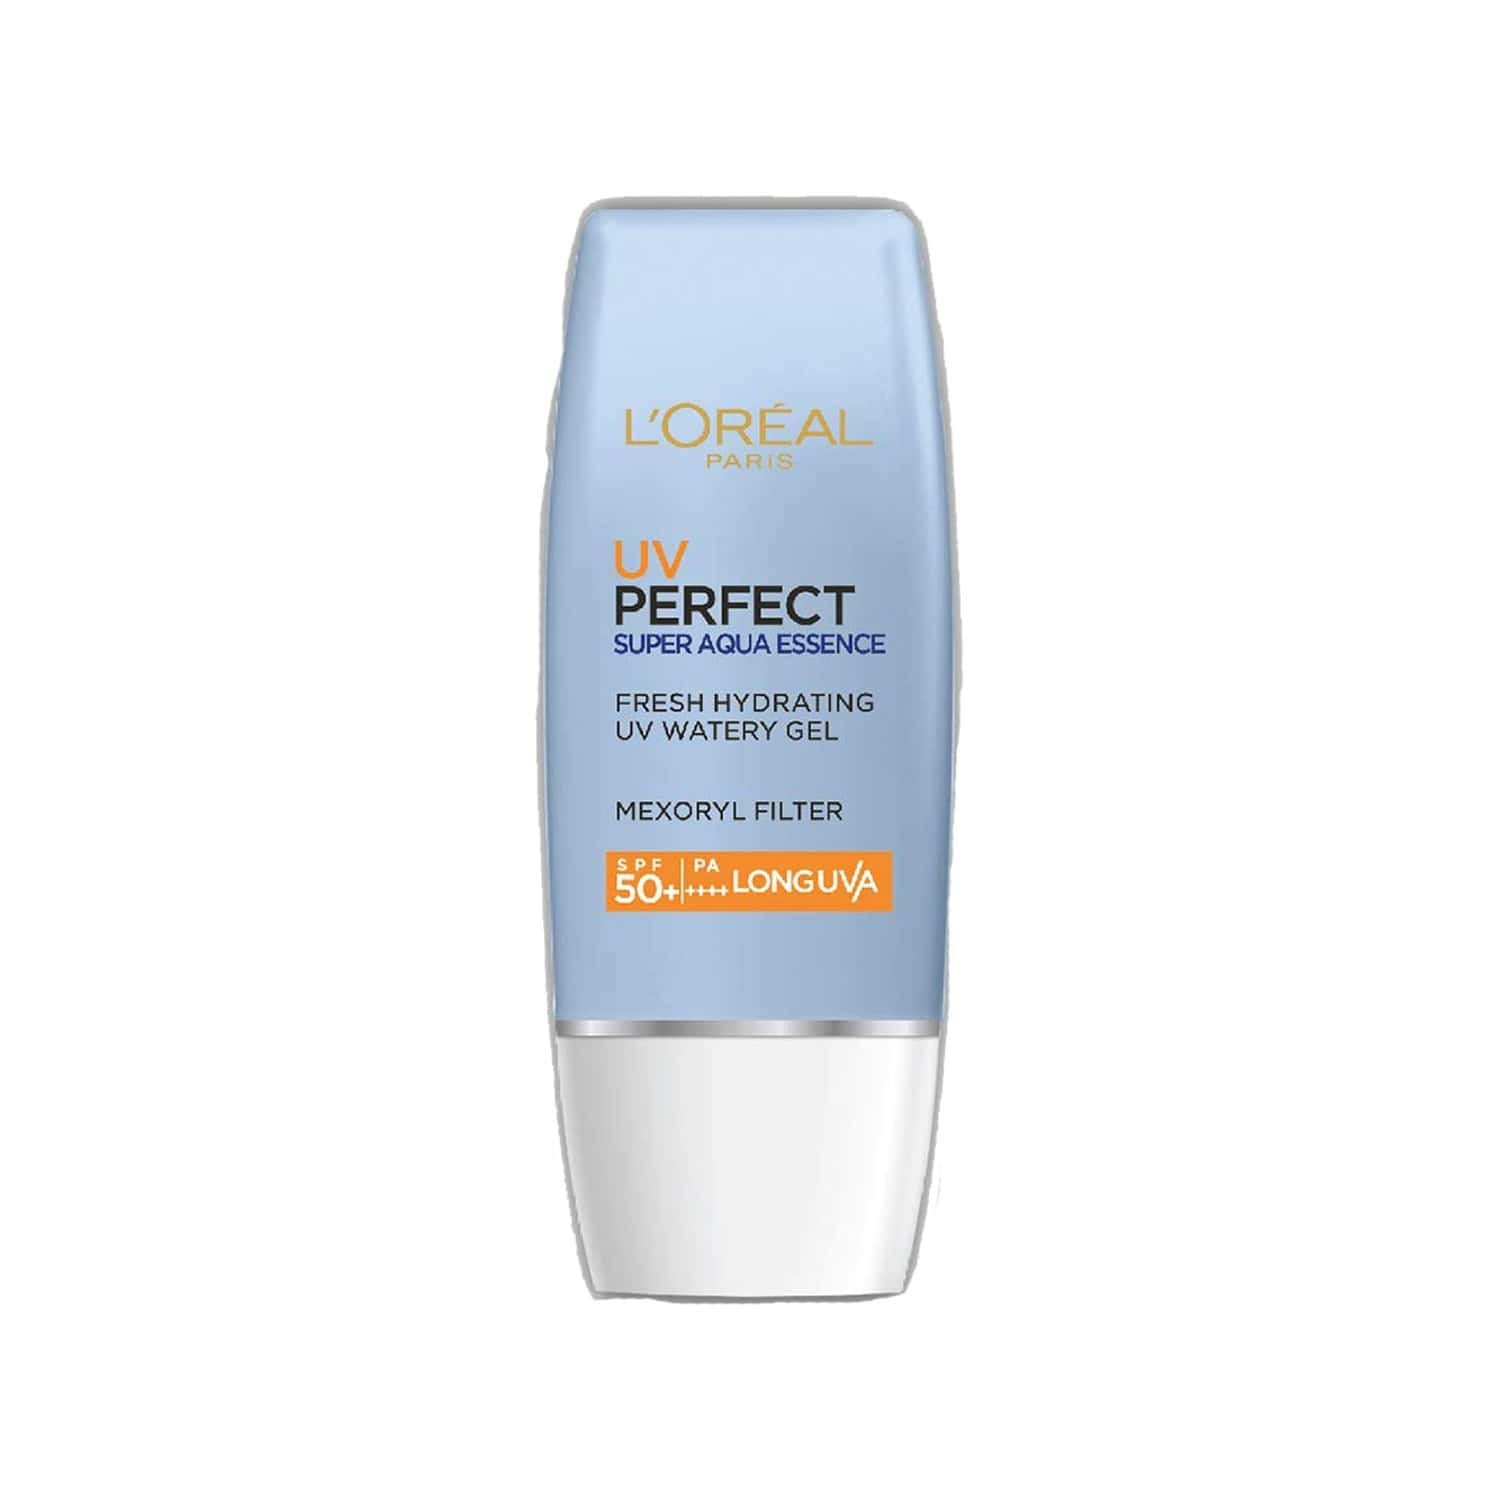 L'oreal Paris Uv Perfect Super Aqua Essence Spf 50+ Pa++++ Long Uva - 30 Ml